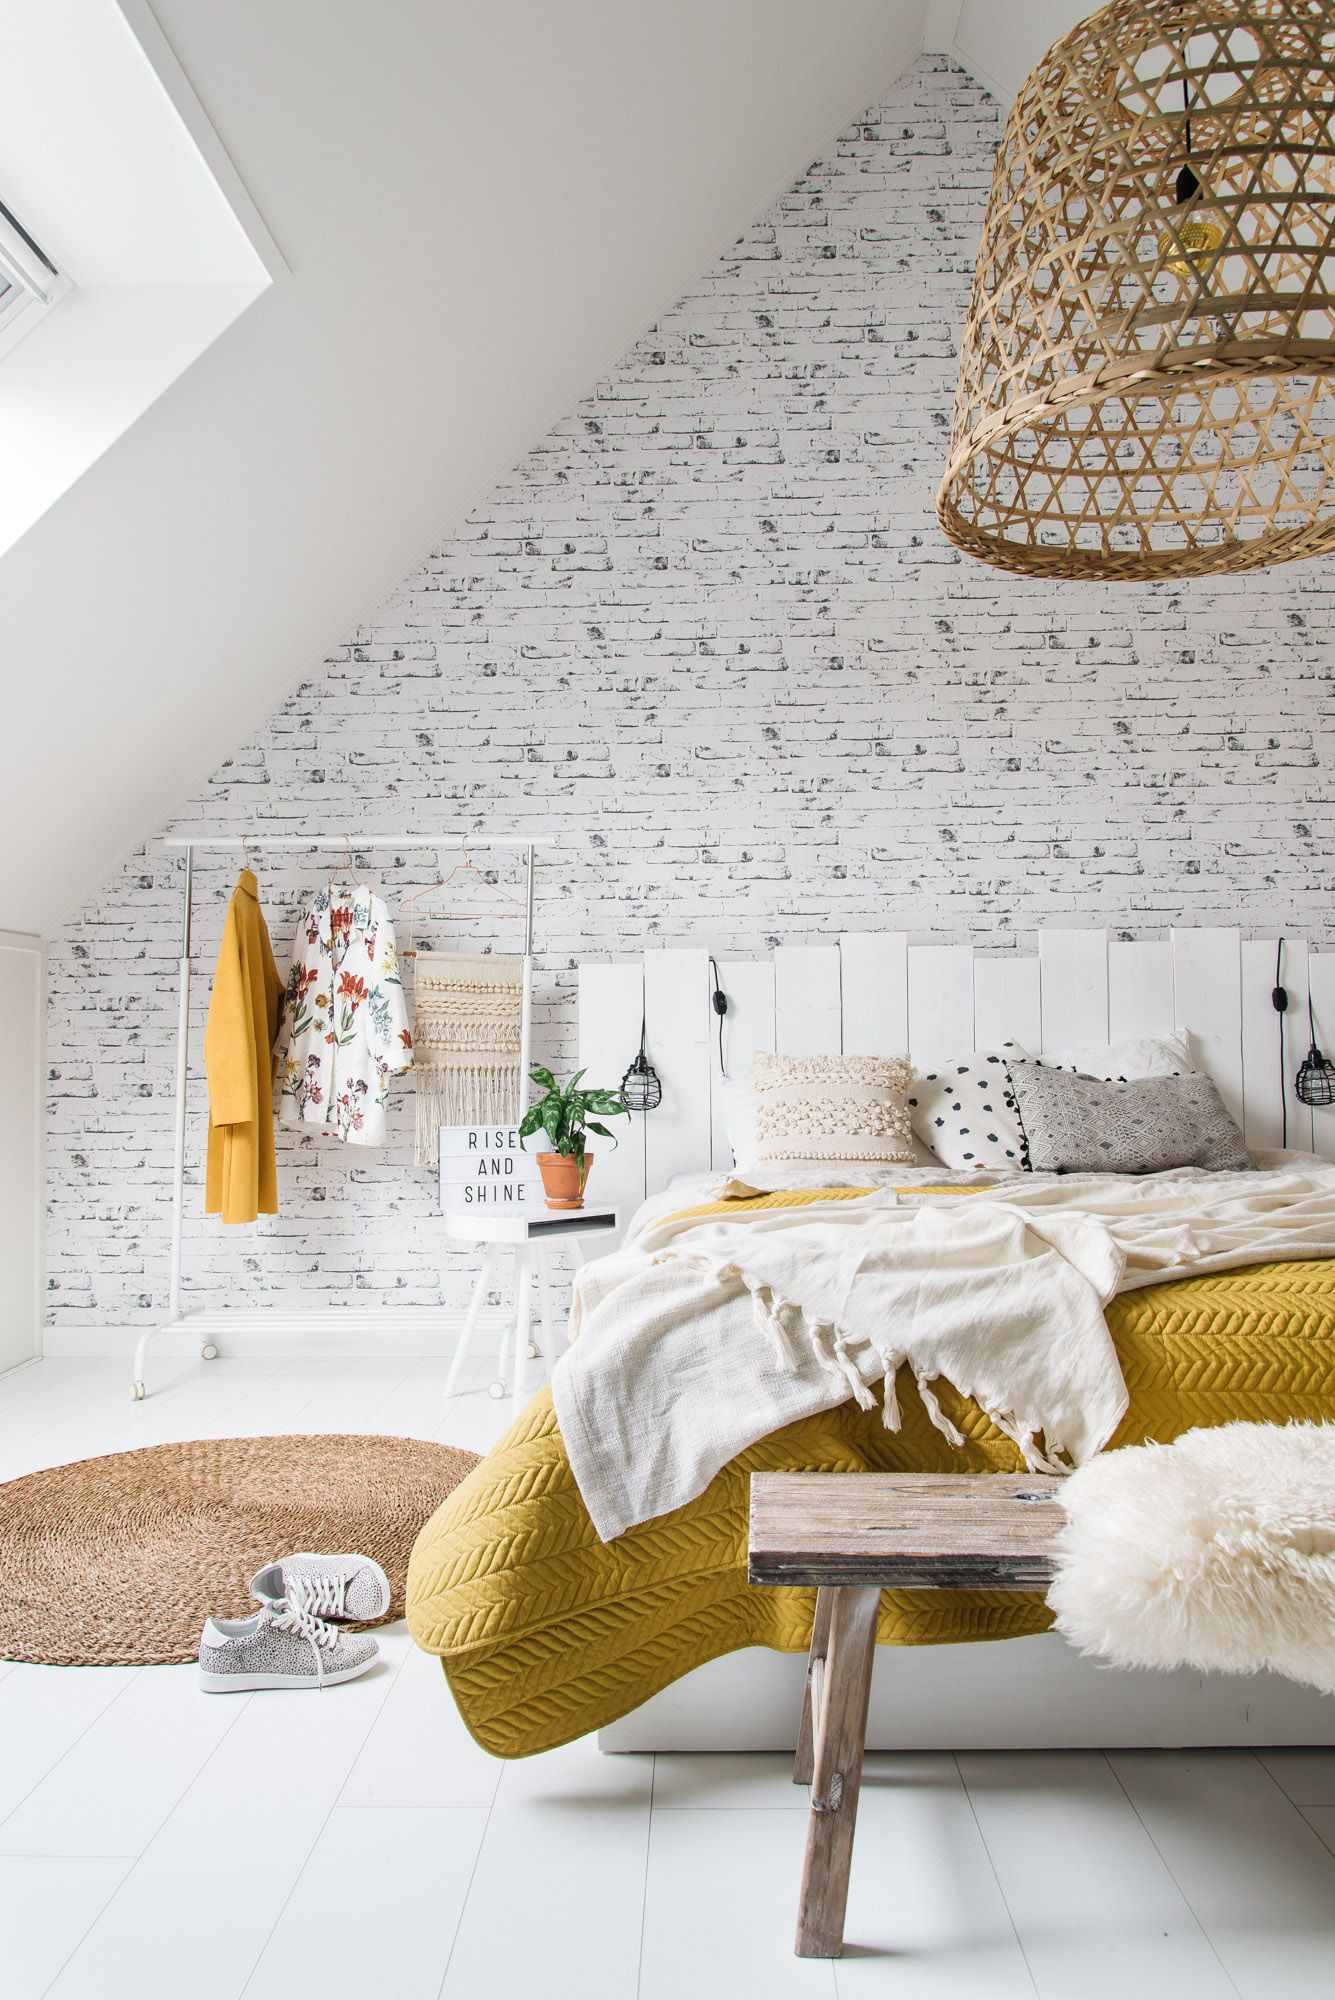 White and mustard yellow in this bedroom (photography by Anne Heijmans)